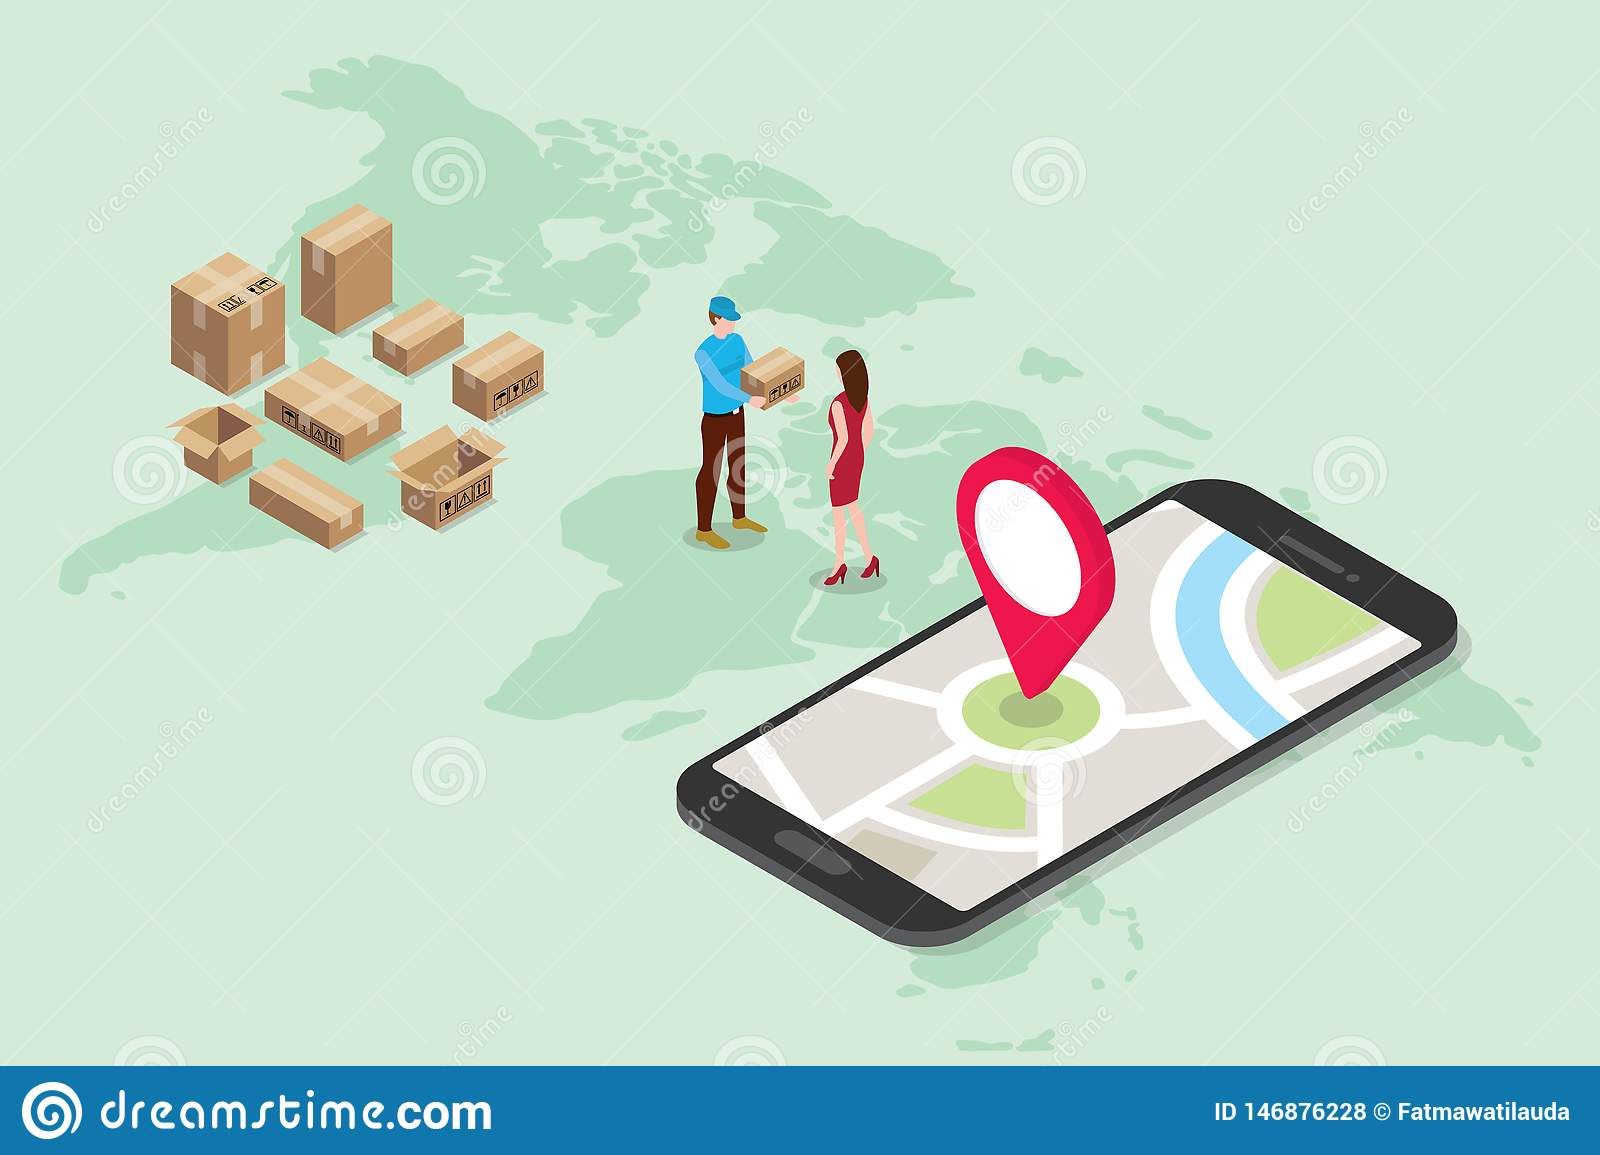 Isometric 3d Online Delivery Service Concept With People ... on manufacturing map, tax map, proxy map, tracking map, old world pirate map, albion map, inventory map, refugee map, ancient world map, documentation map, training map, safety map, development map, planning map, strategy map, research map, shipping map, service map, shipment map,